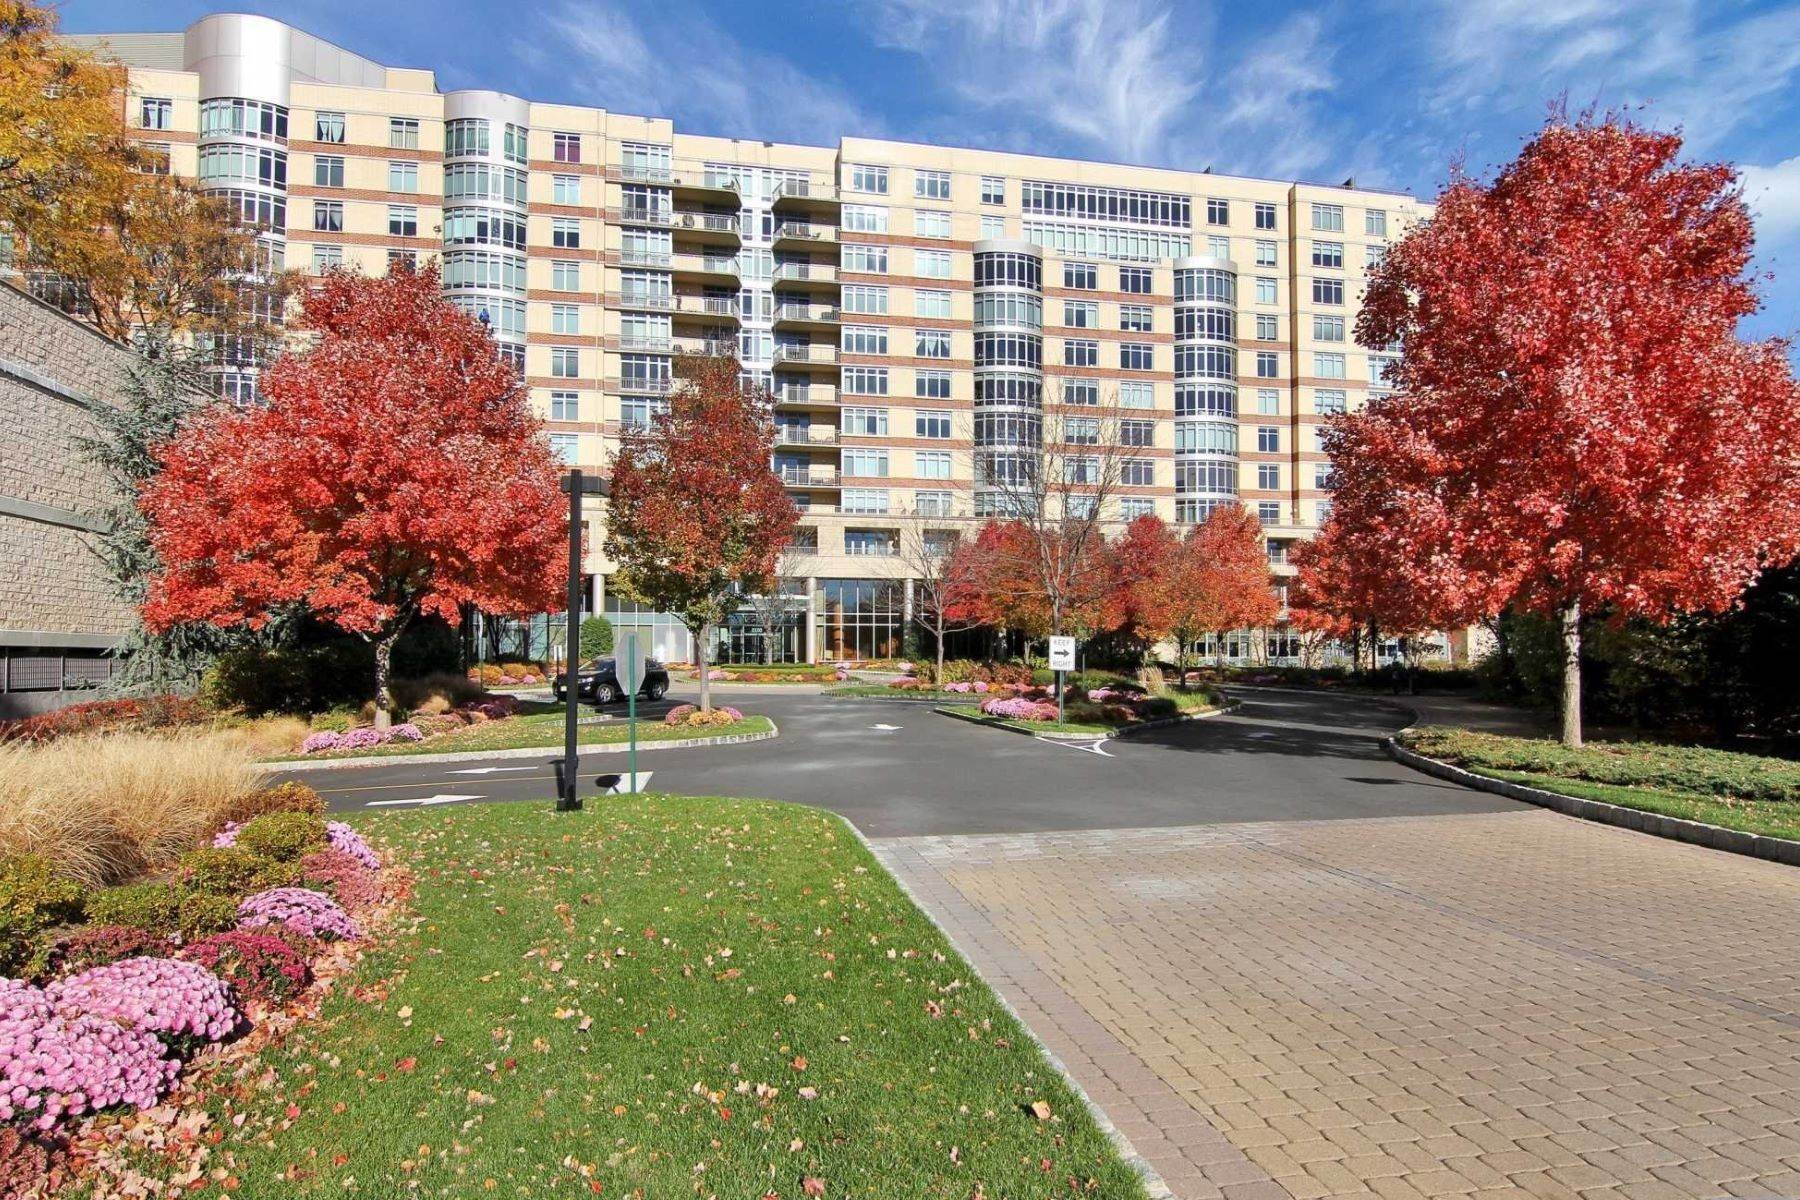 Condominiums para Venda às 8100 River Rd. nit 809, North Bergen, NJ 07047 8100 River Rd., Unit 905 North Bergen, Nova Jersey 07047 Estados Unidos